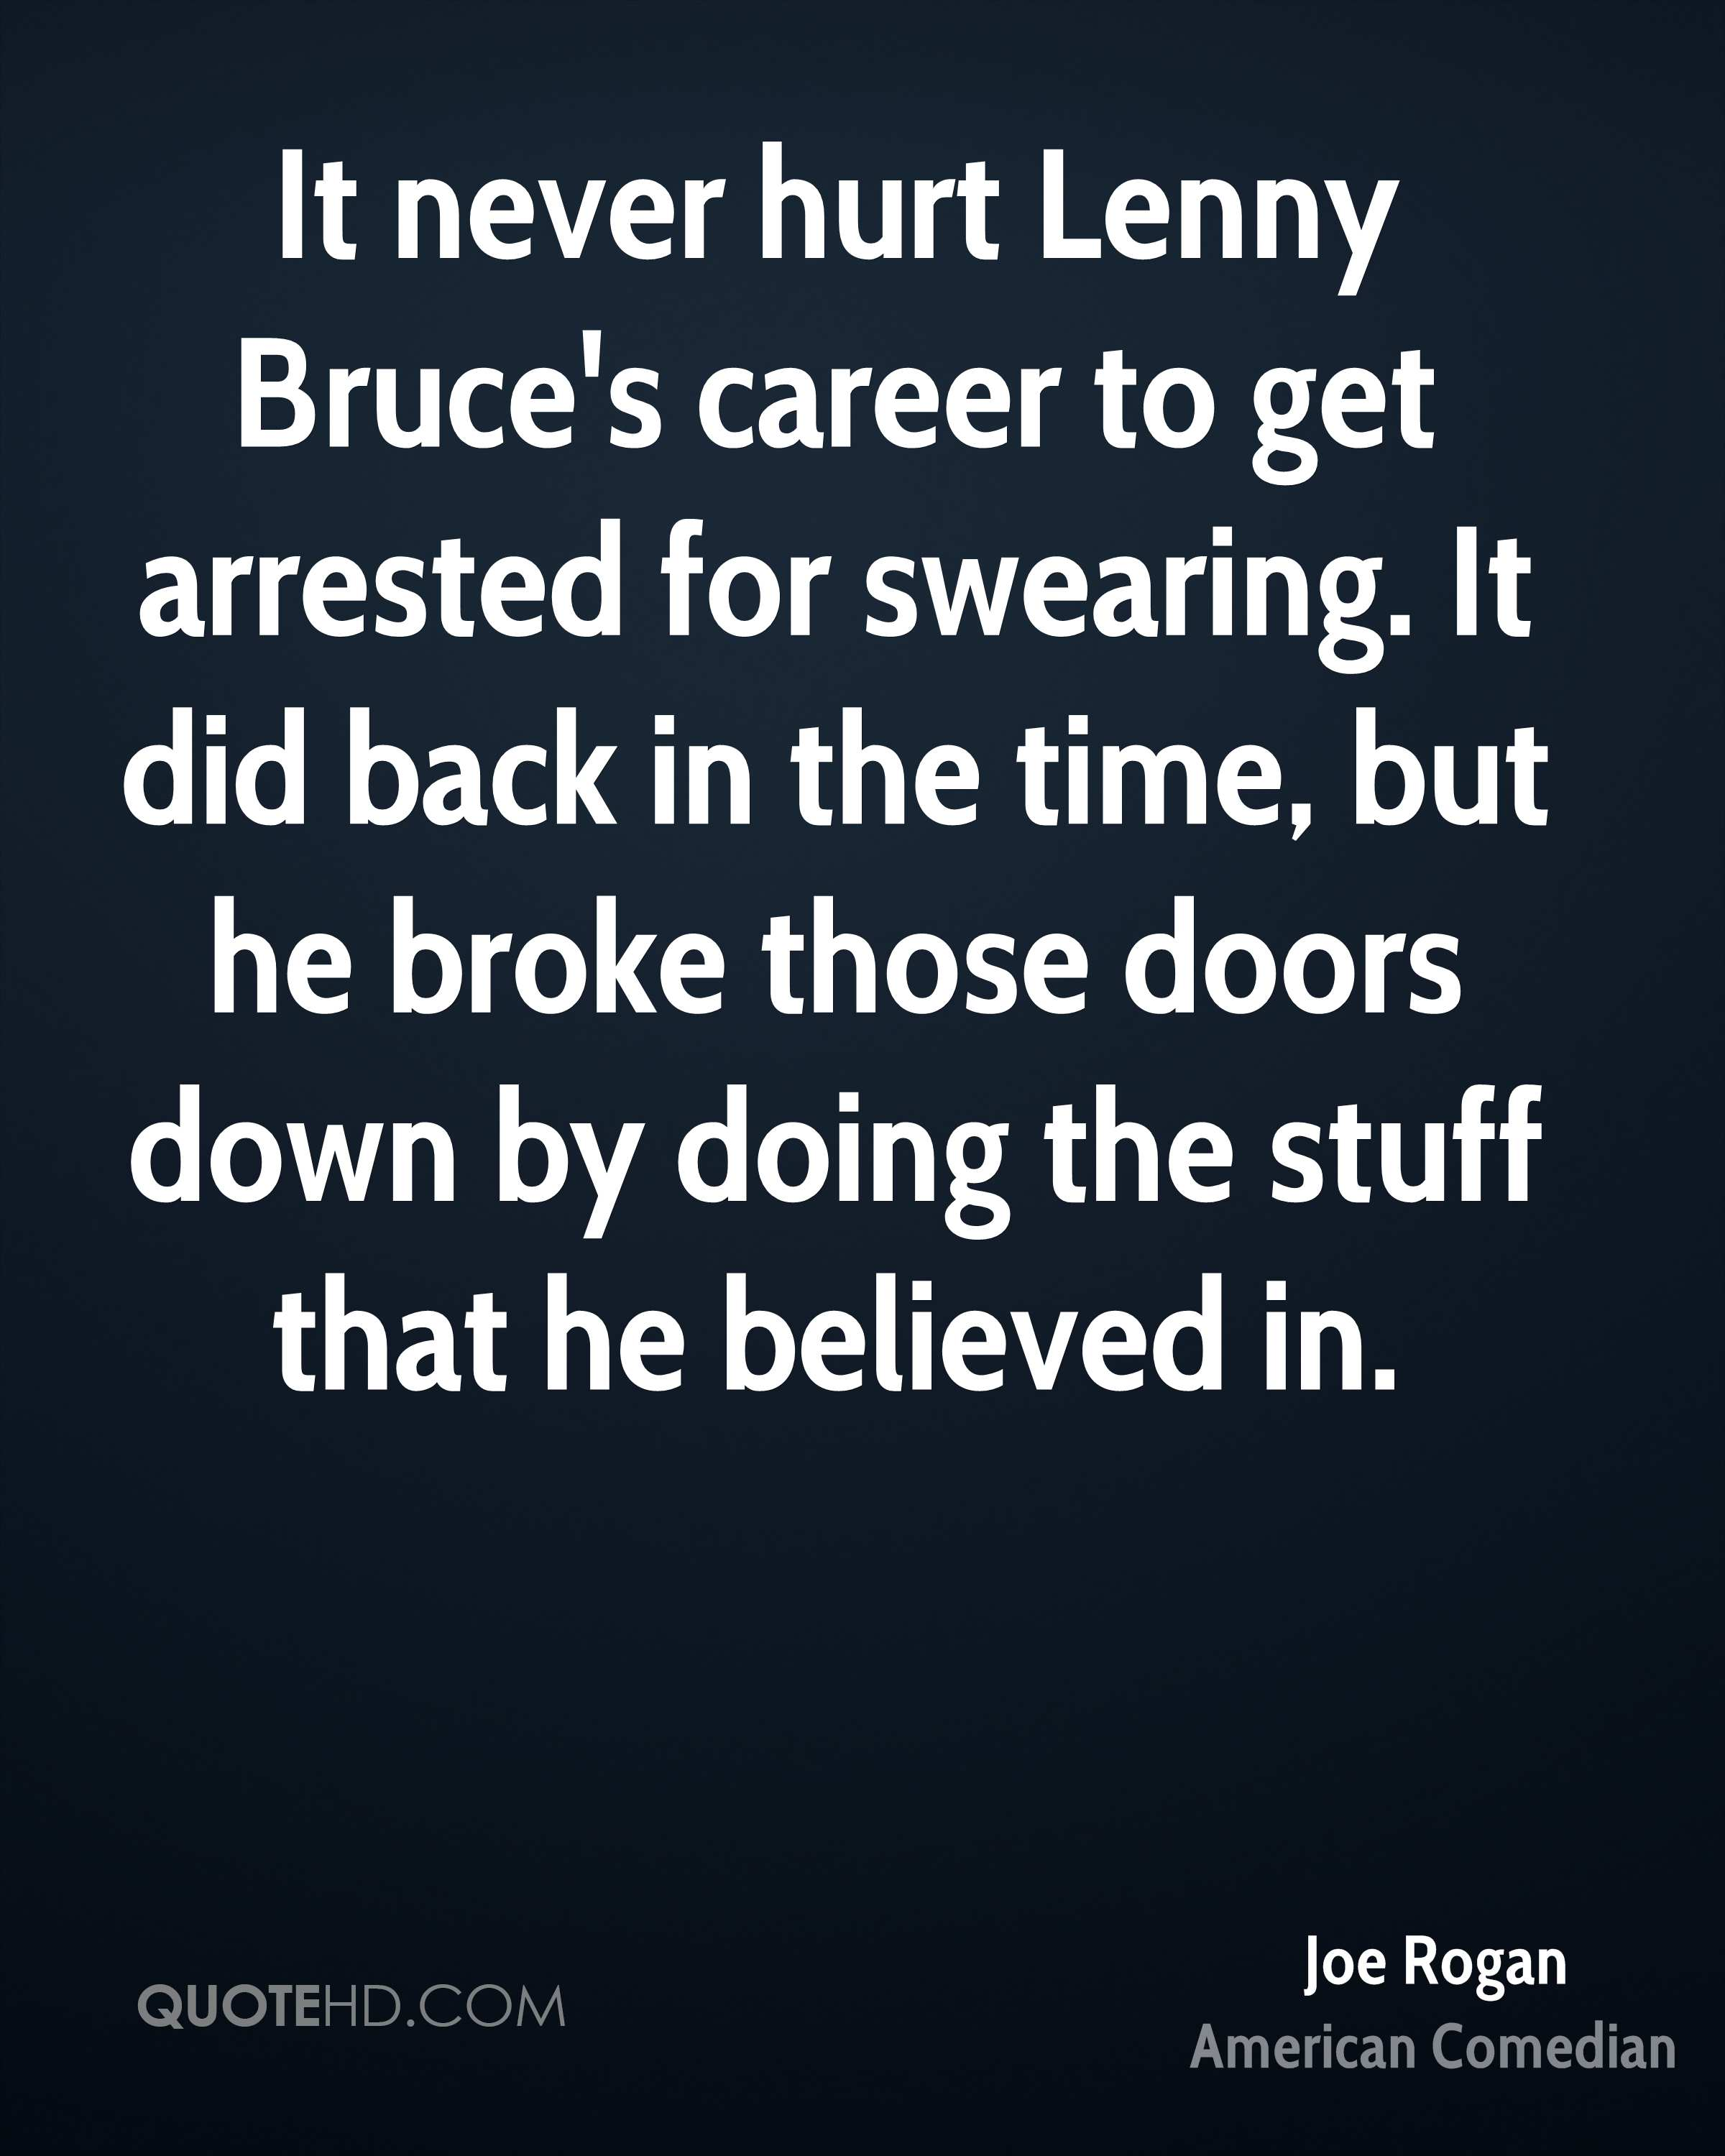 It never hurt Lenny Bruce's career to get arrested for swearing. It did back in the time, but he broke those doors down by doing the stuff that he believed in.